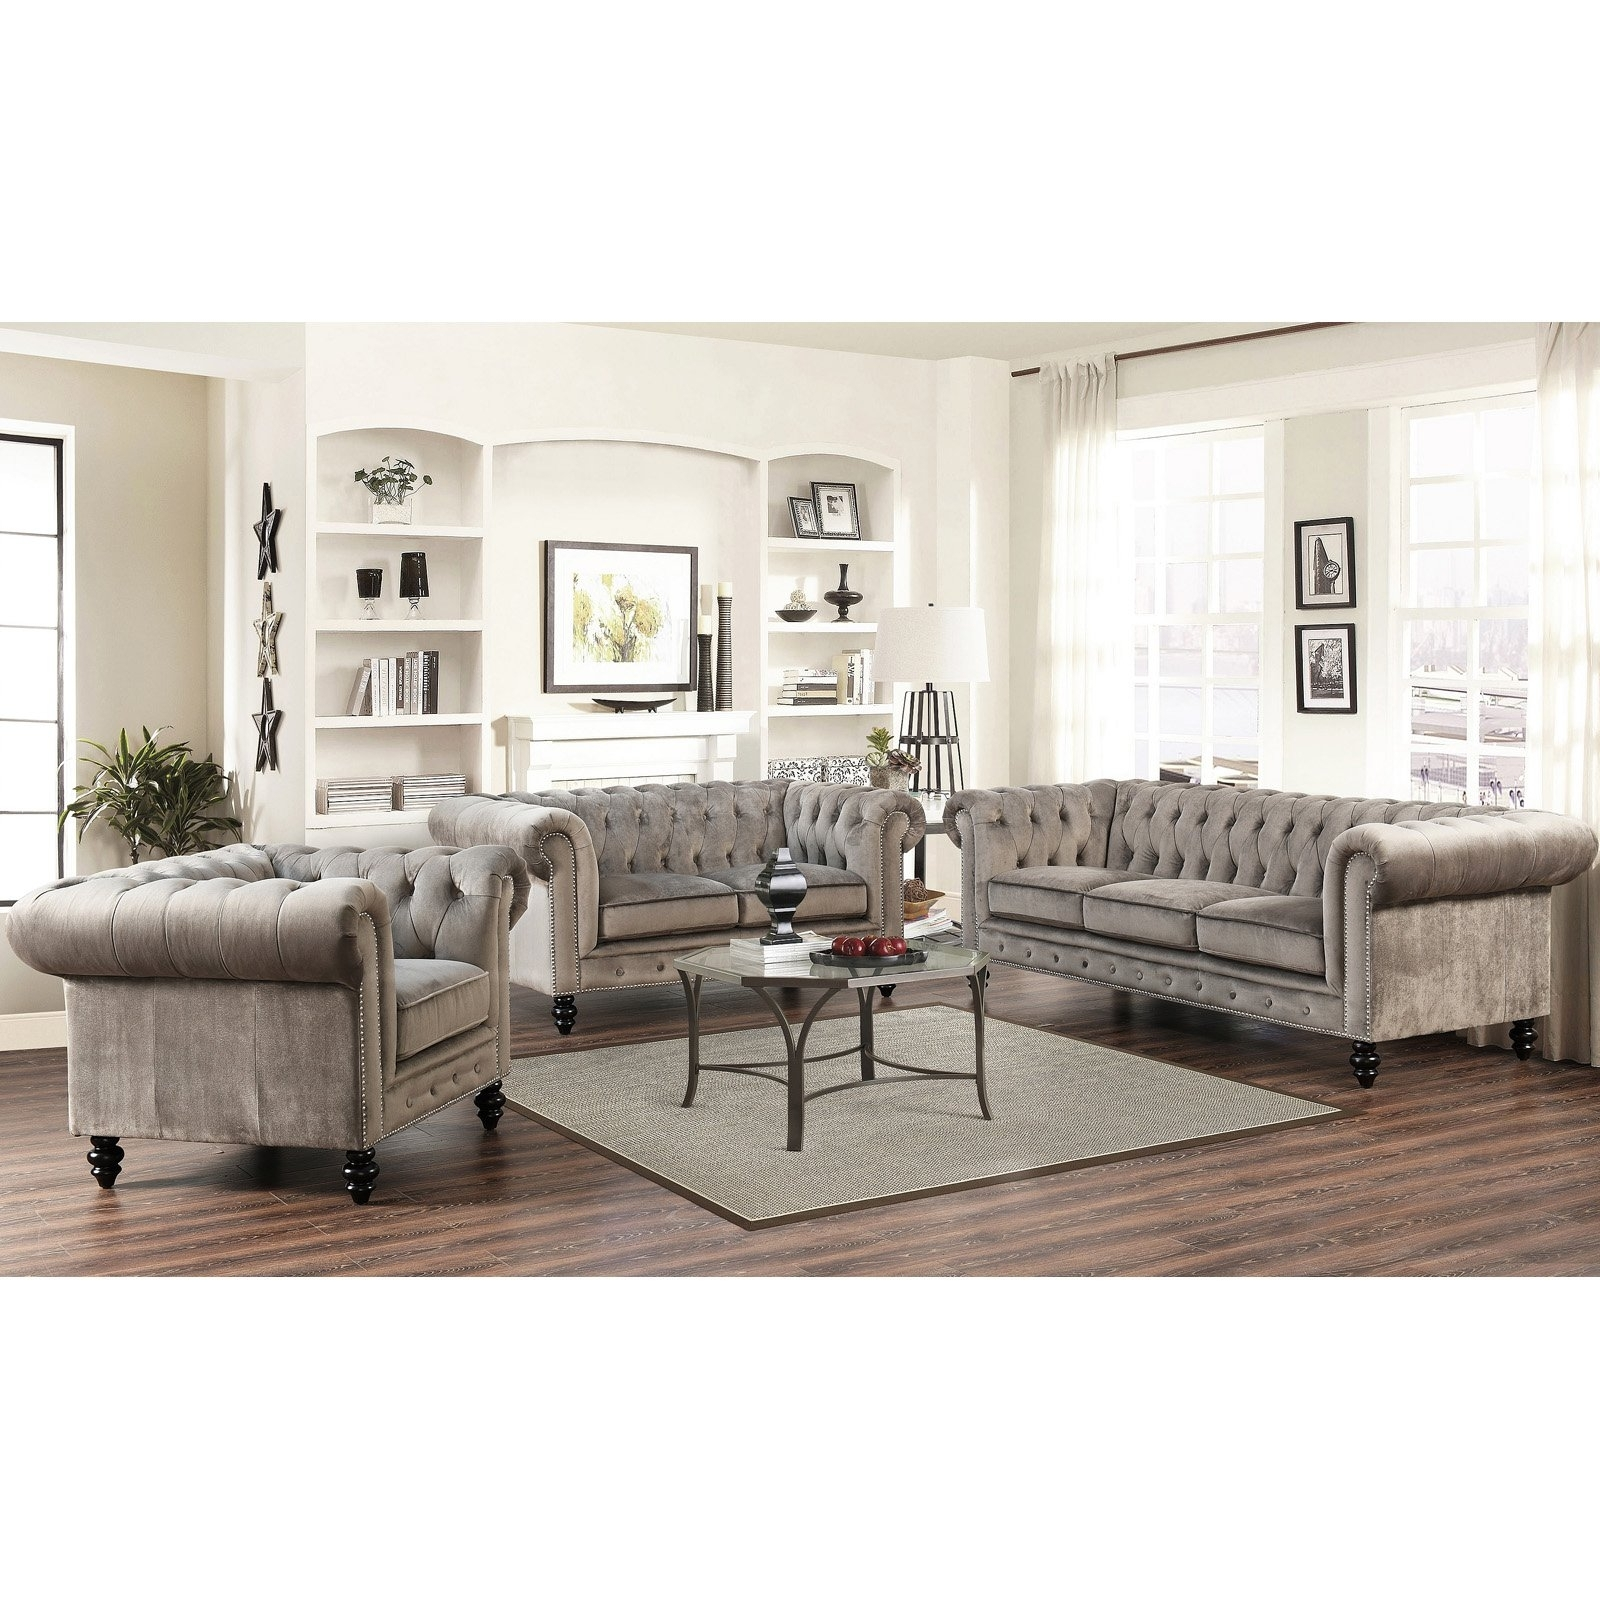 Hayneedle Pertaining To Velvet Sofas (View 7 of 20)